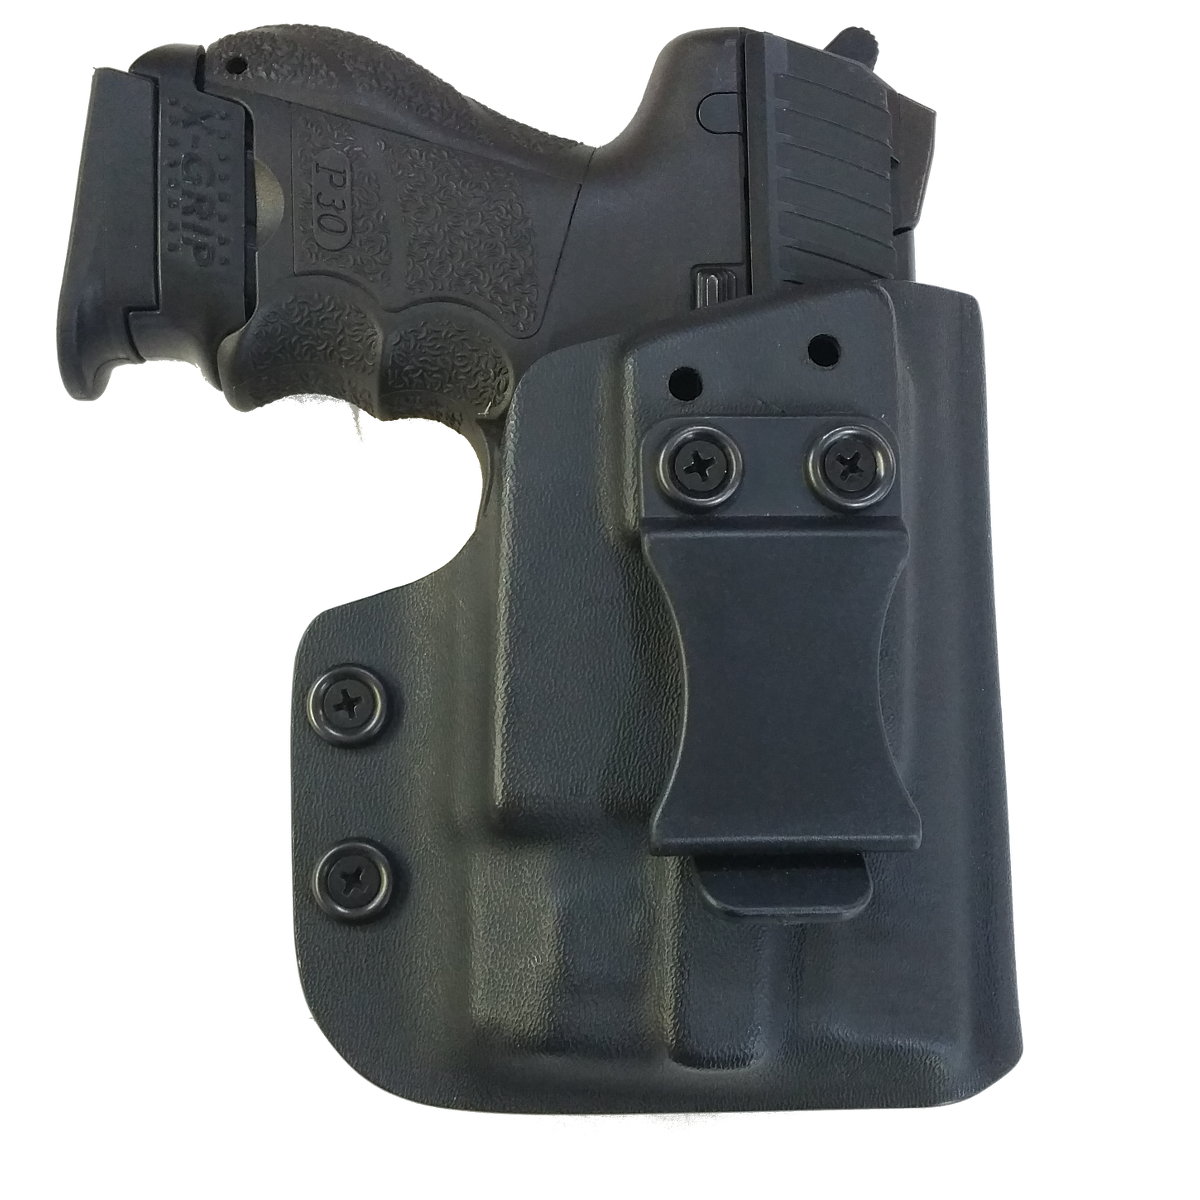 Kydex clip pocket. Theisholsters free shipping